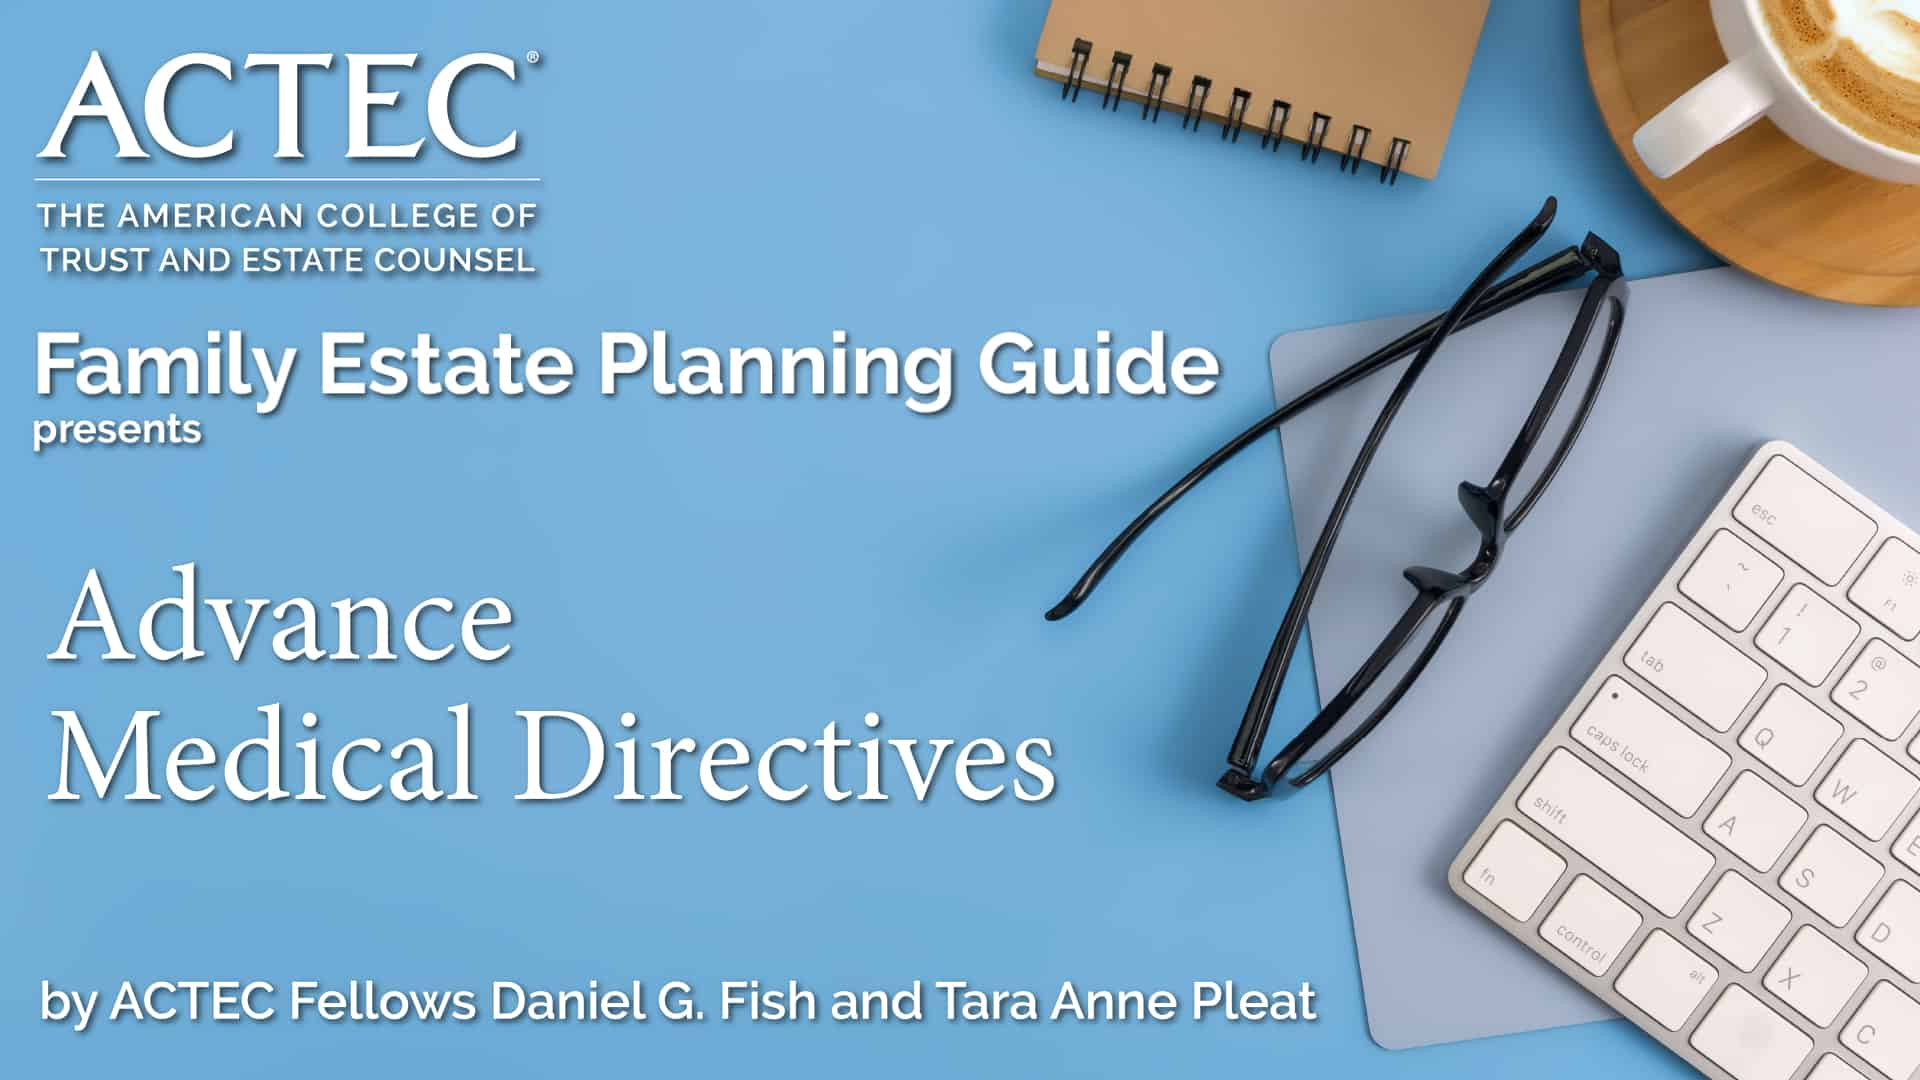 Advance Medical Directives: Living Will, Medical Orders (MOLST & POLST), DNR